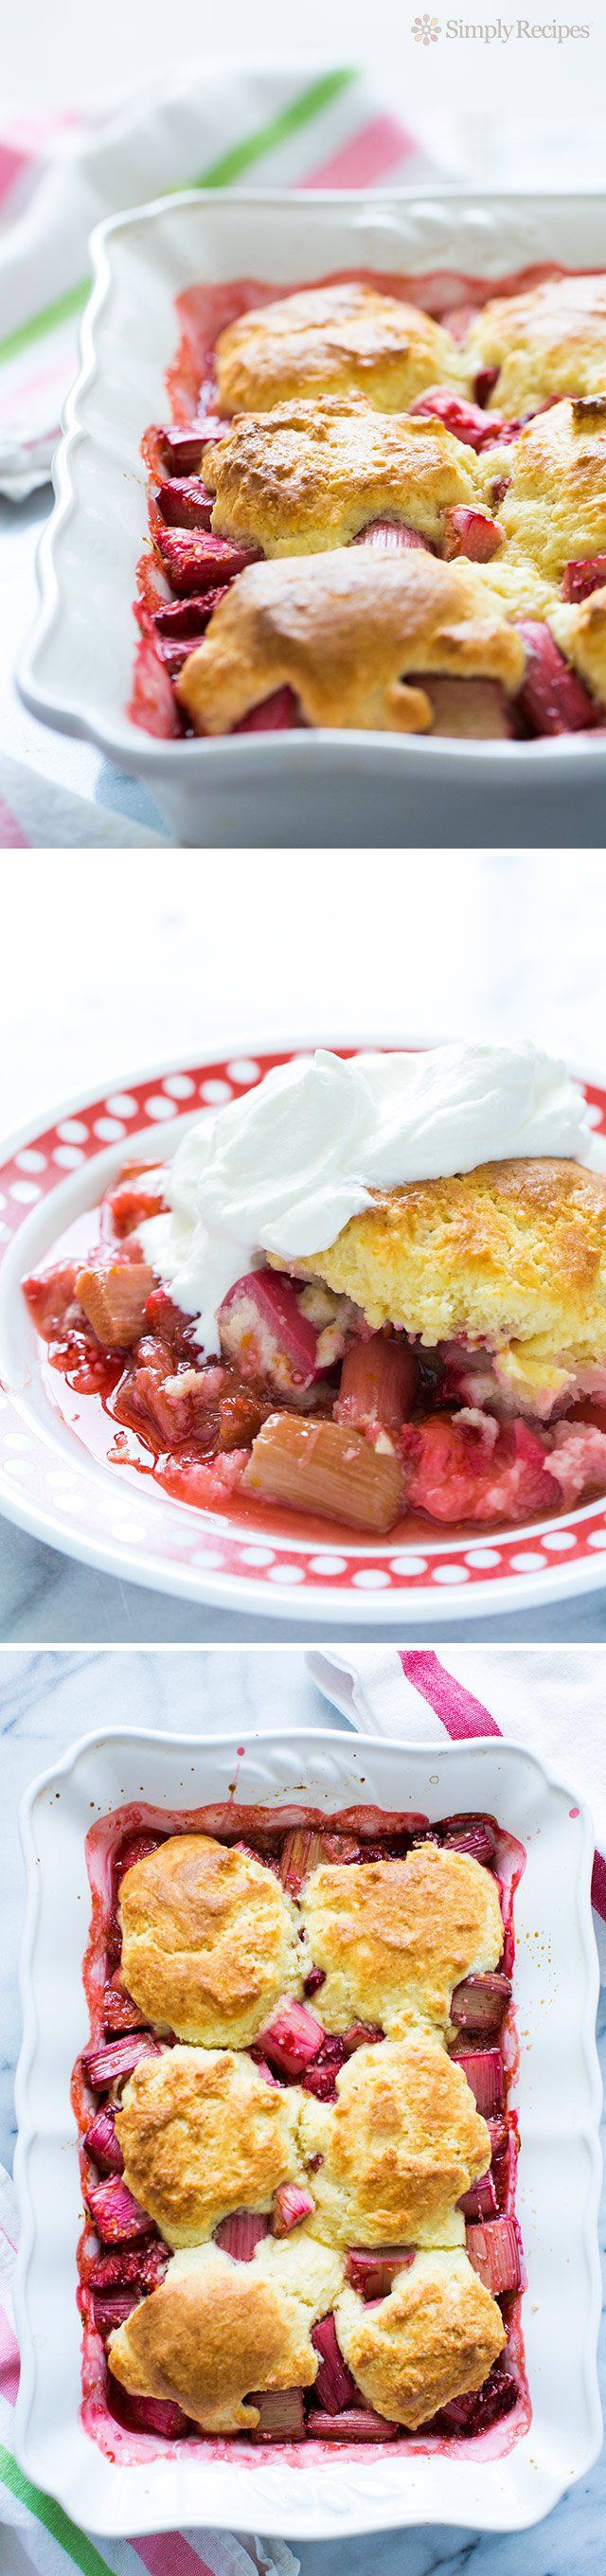 Strawberry Rhubarb Cobbler ~ Easy-to-make strawberry rhubarb cobbler.  Strawberries, rhubarb, sugar, orange peel baked with a biscuit-like cobbler crust topping.  Serve with whipped cream. ~ SimplyRecipes.com